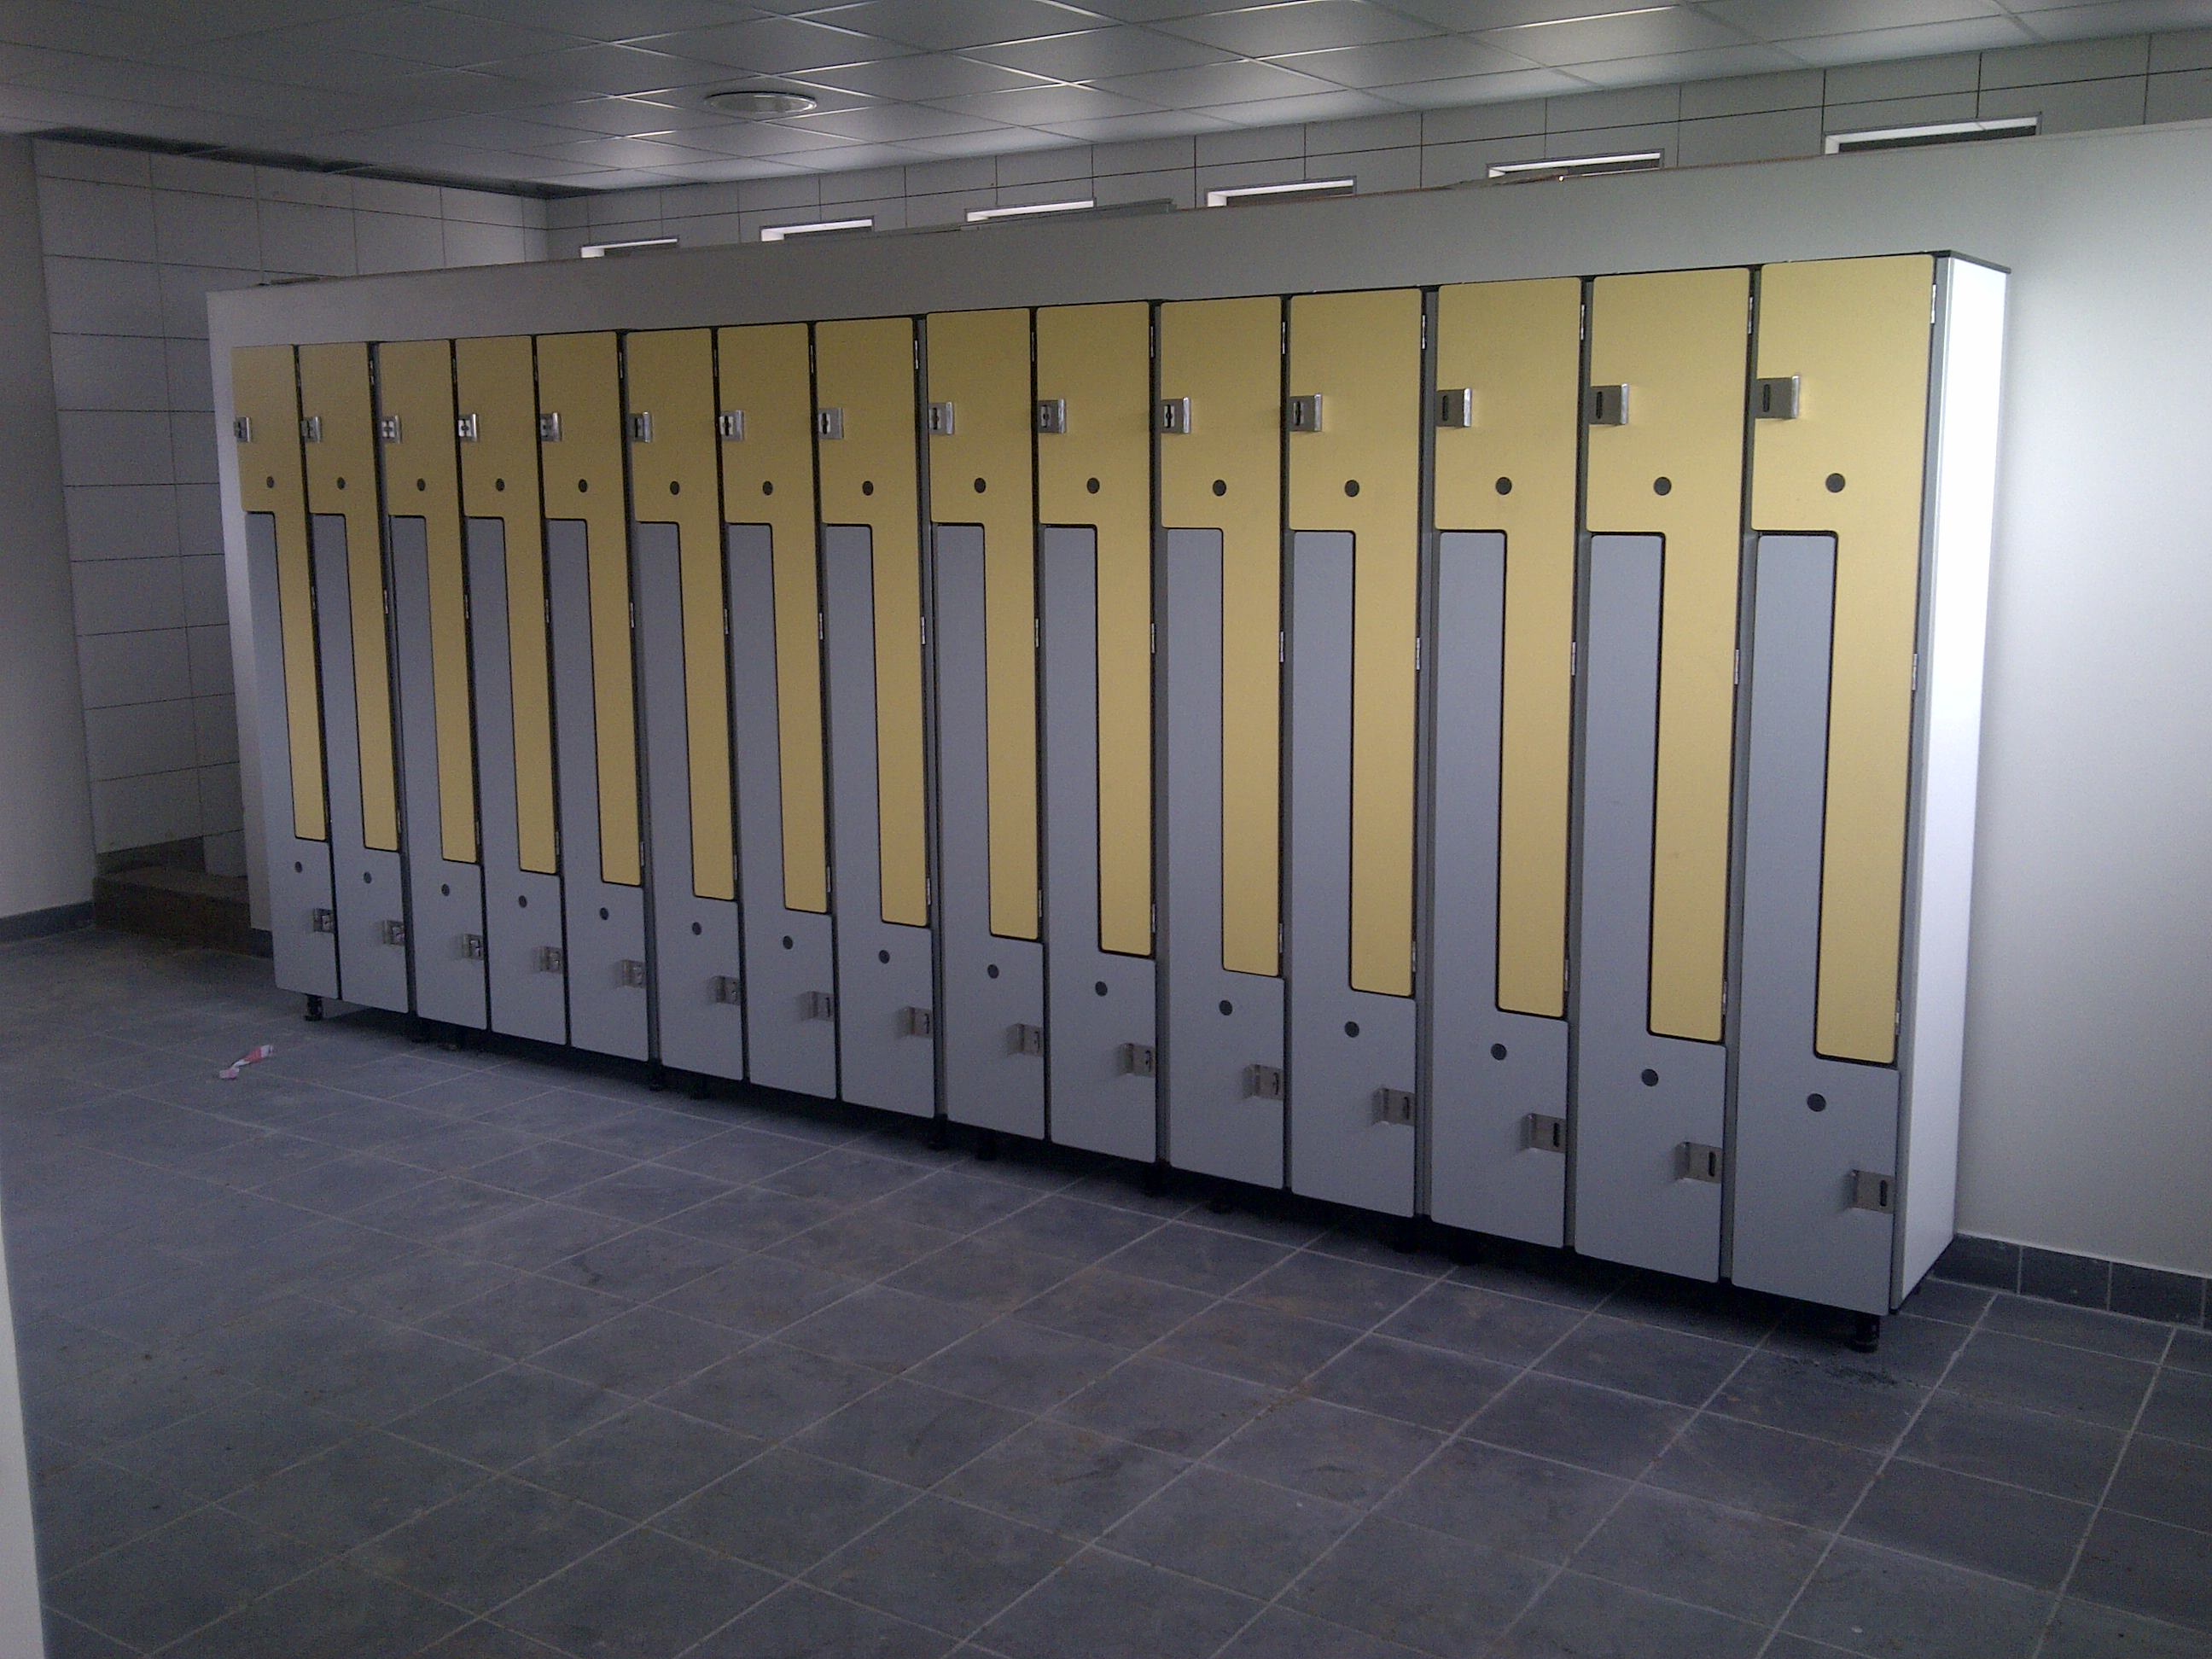 Cubicle Solutions built lockers for BHP Billiton